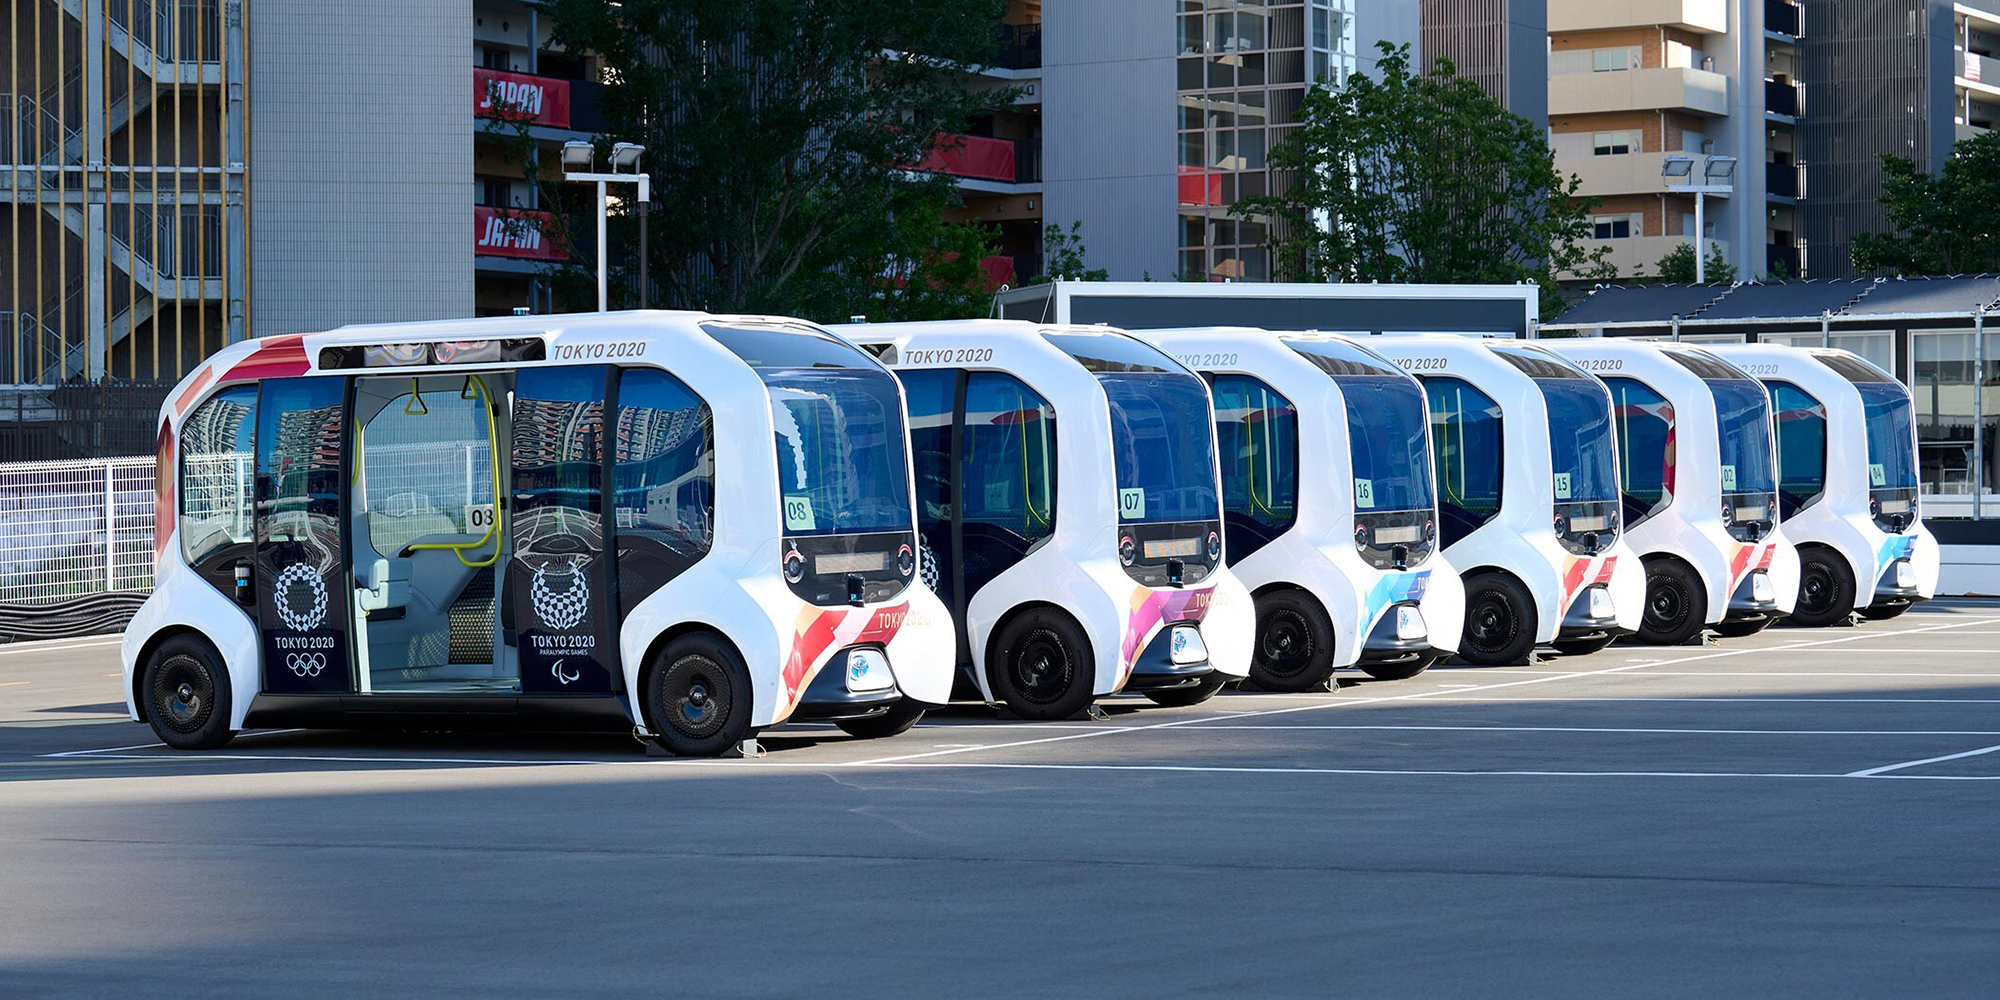 Toyota suspends all self-driving vehicles at Paralympic Games after collision with athlete - Electrek